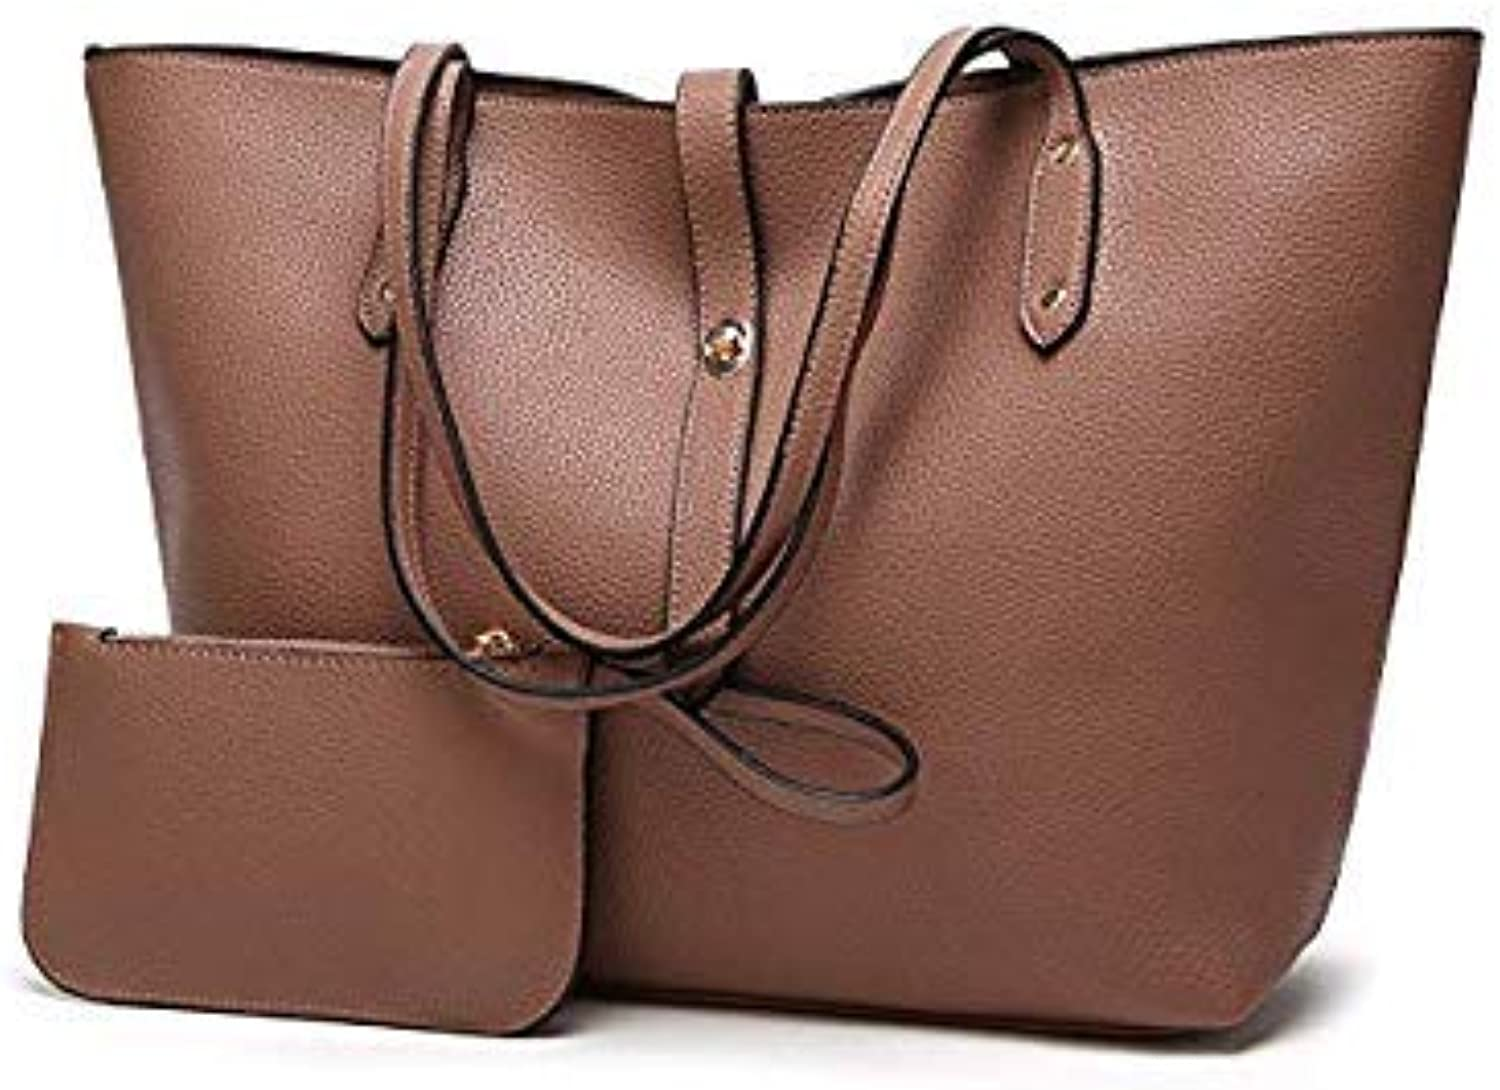 Bloomerang Herald Fashion Women Shoulder Bags Fashion PU Leather 2pcs Composite Bag Famous Brand Women Tote Bag Rivets Female Handbag Sets color Coffee 34x13x31cm